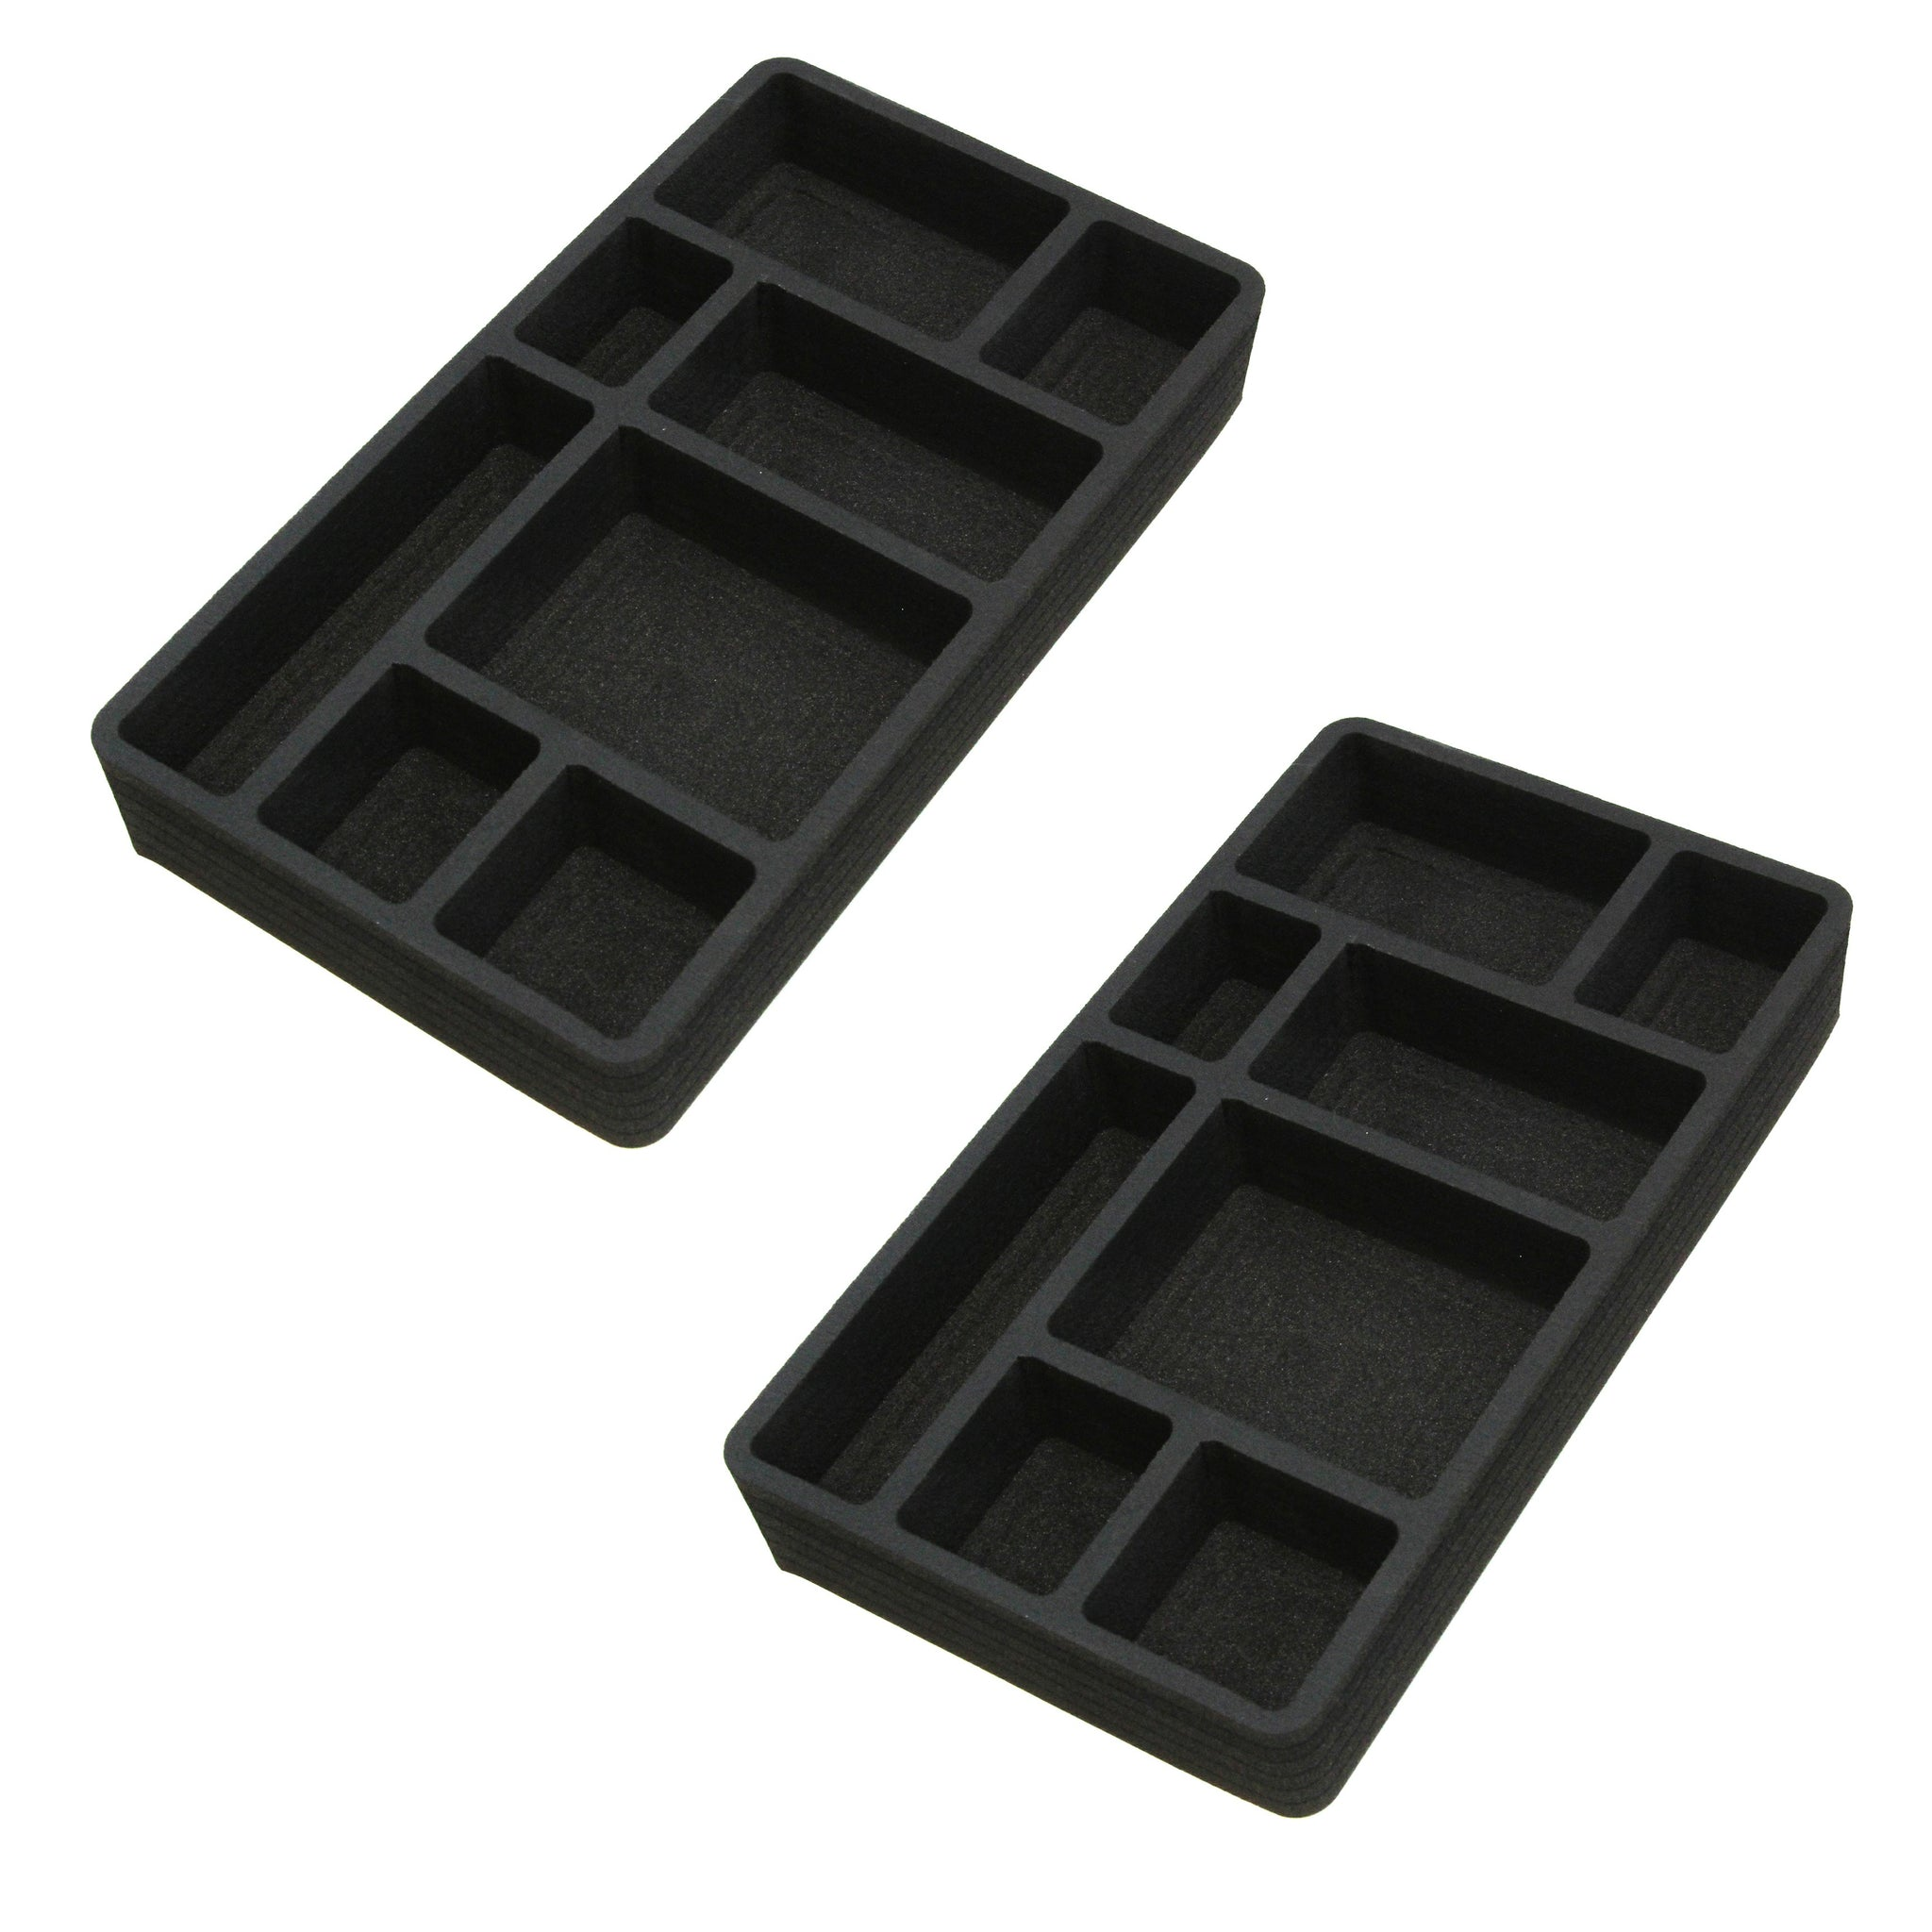 Polar Whale 2 Piece Desk Drawer Organizers Tray Non-Slip Waterproof Insert for Office Home Shop Garage  9 X 16 X 2 Inches Black 8 Compartments Extra Deep Pair Set of 2